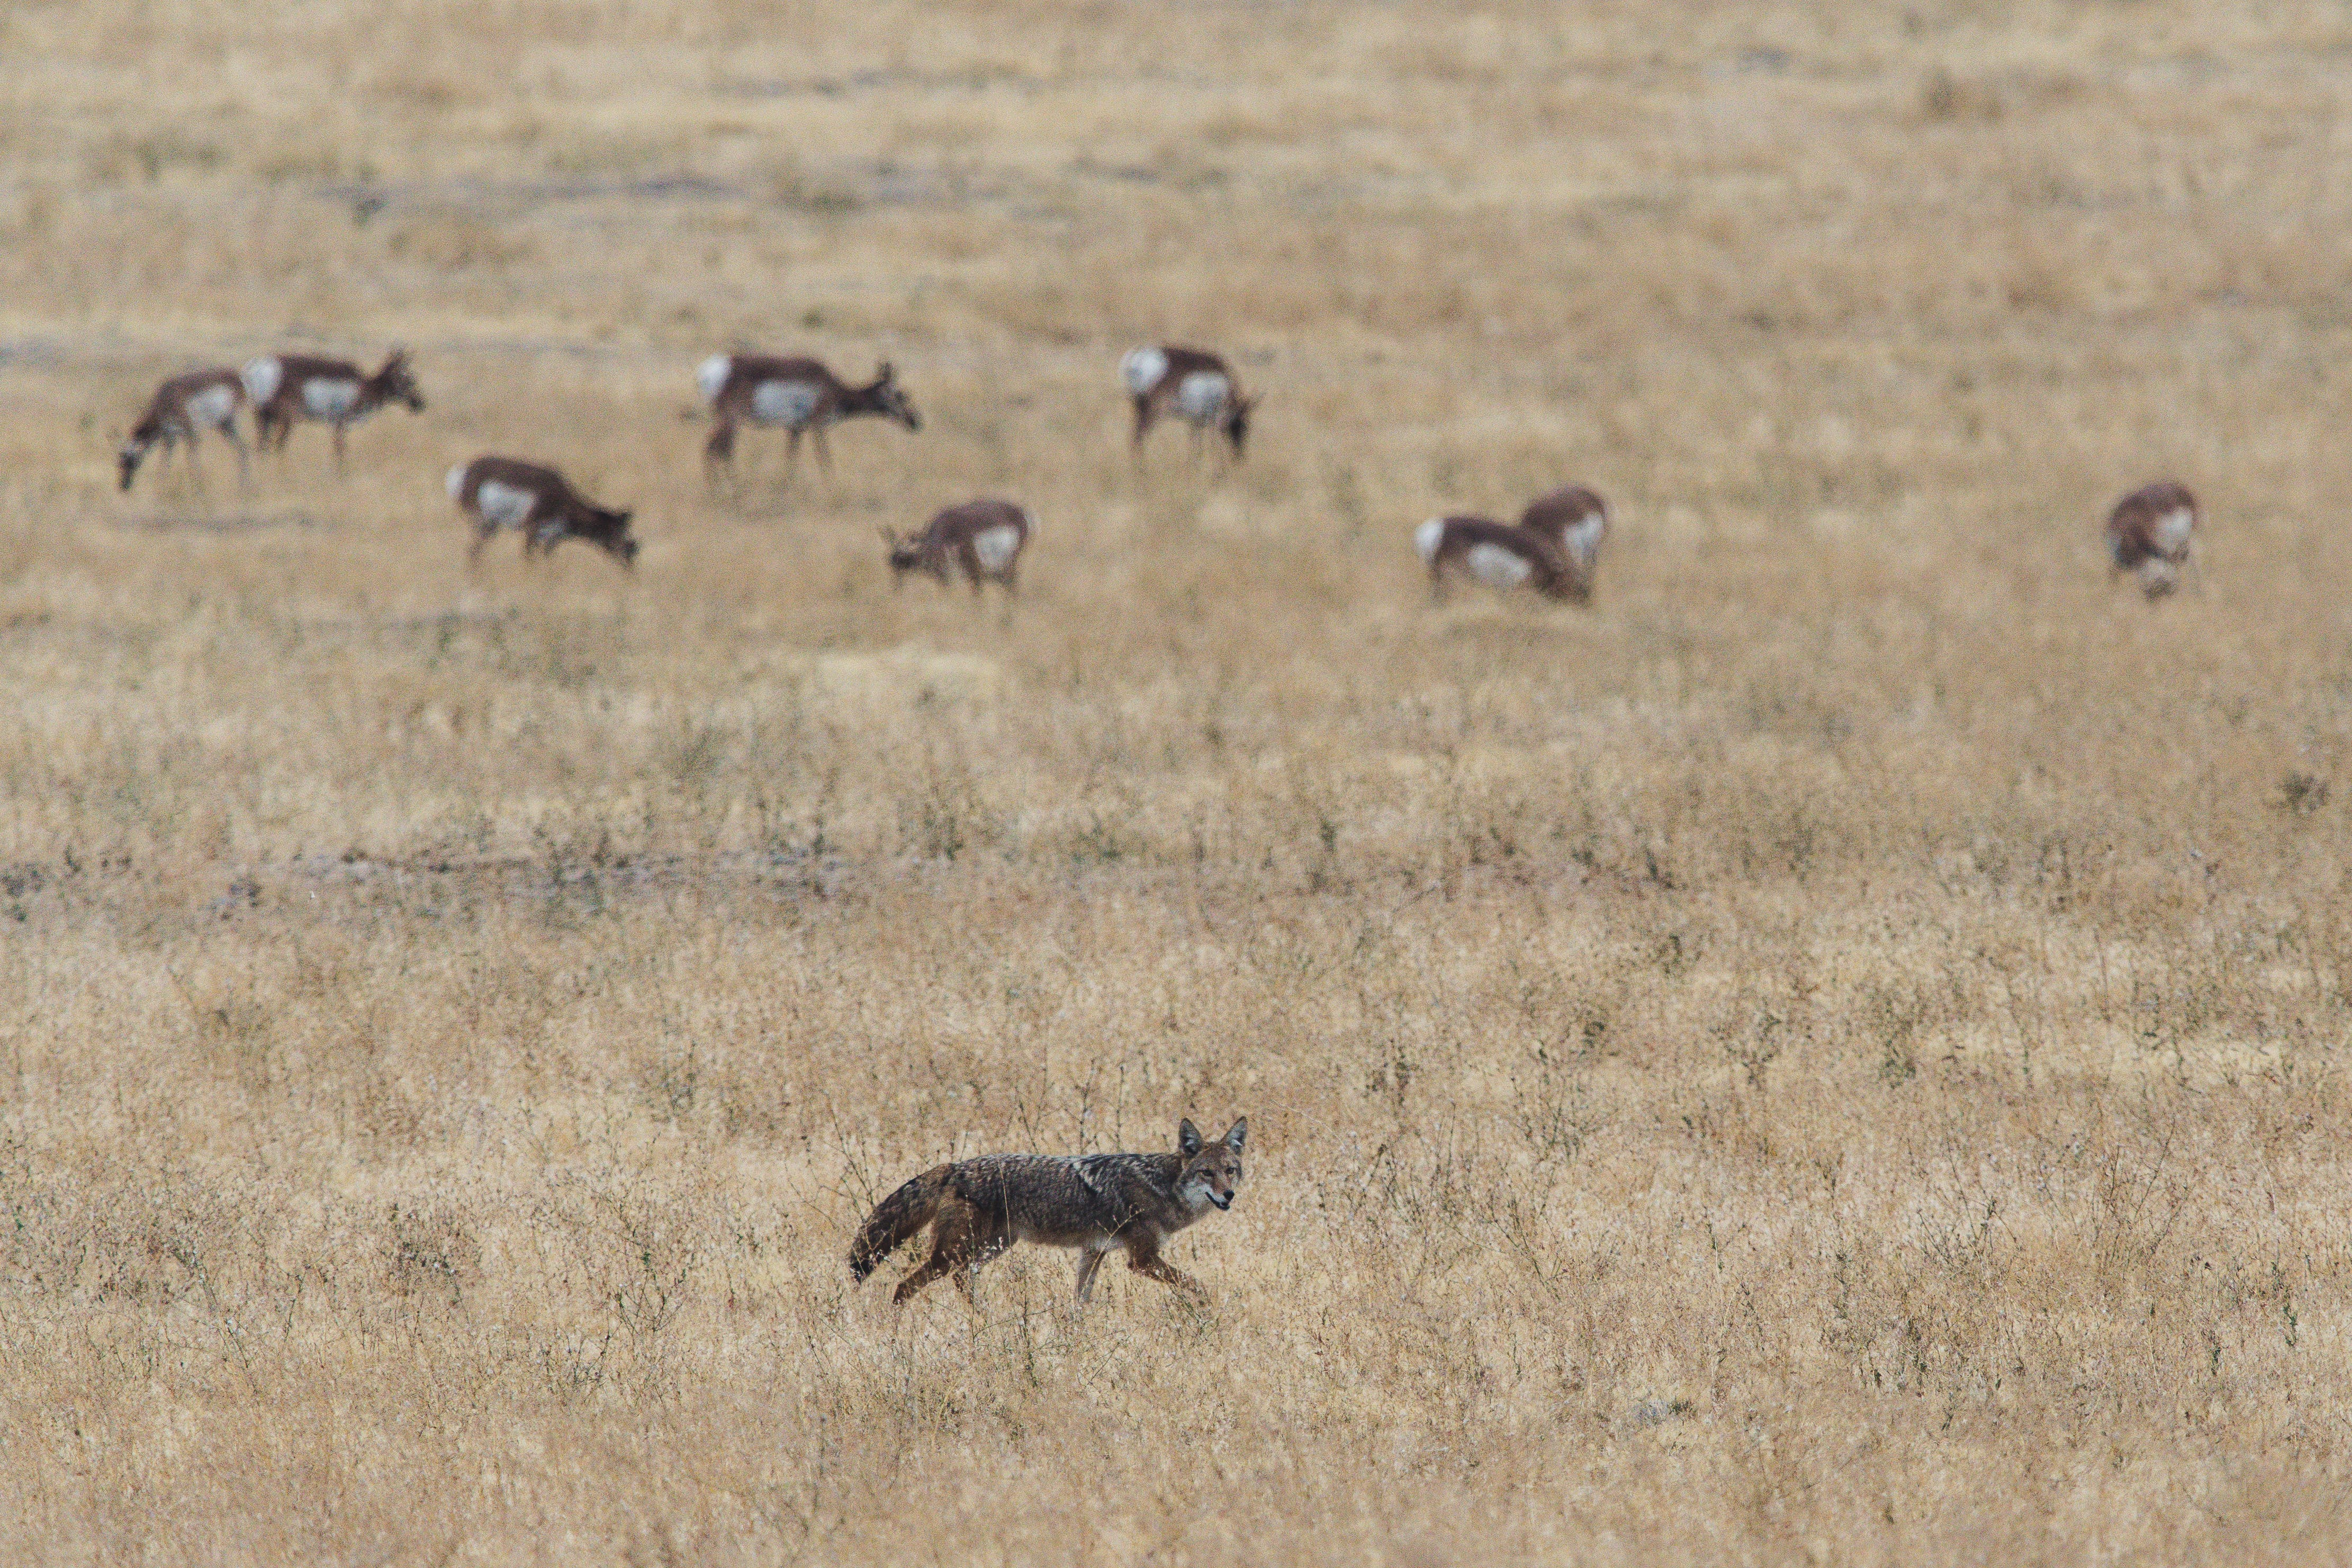 Grey and Brown Fox on Open Field Near Herd of Deer